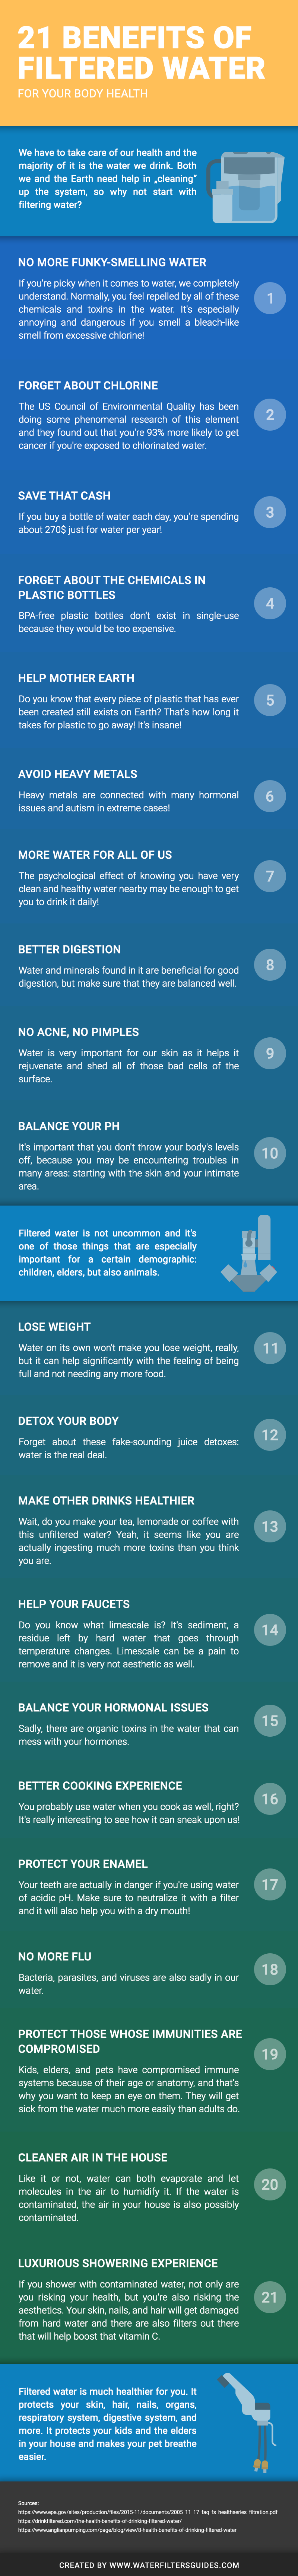 21 Benefits Of Filtered Water